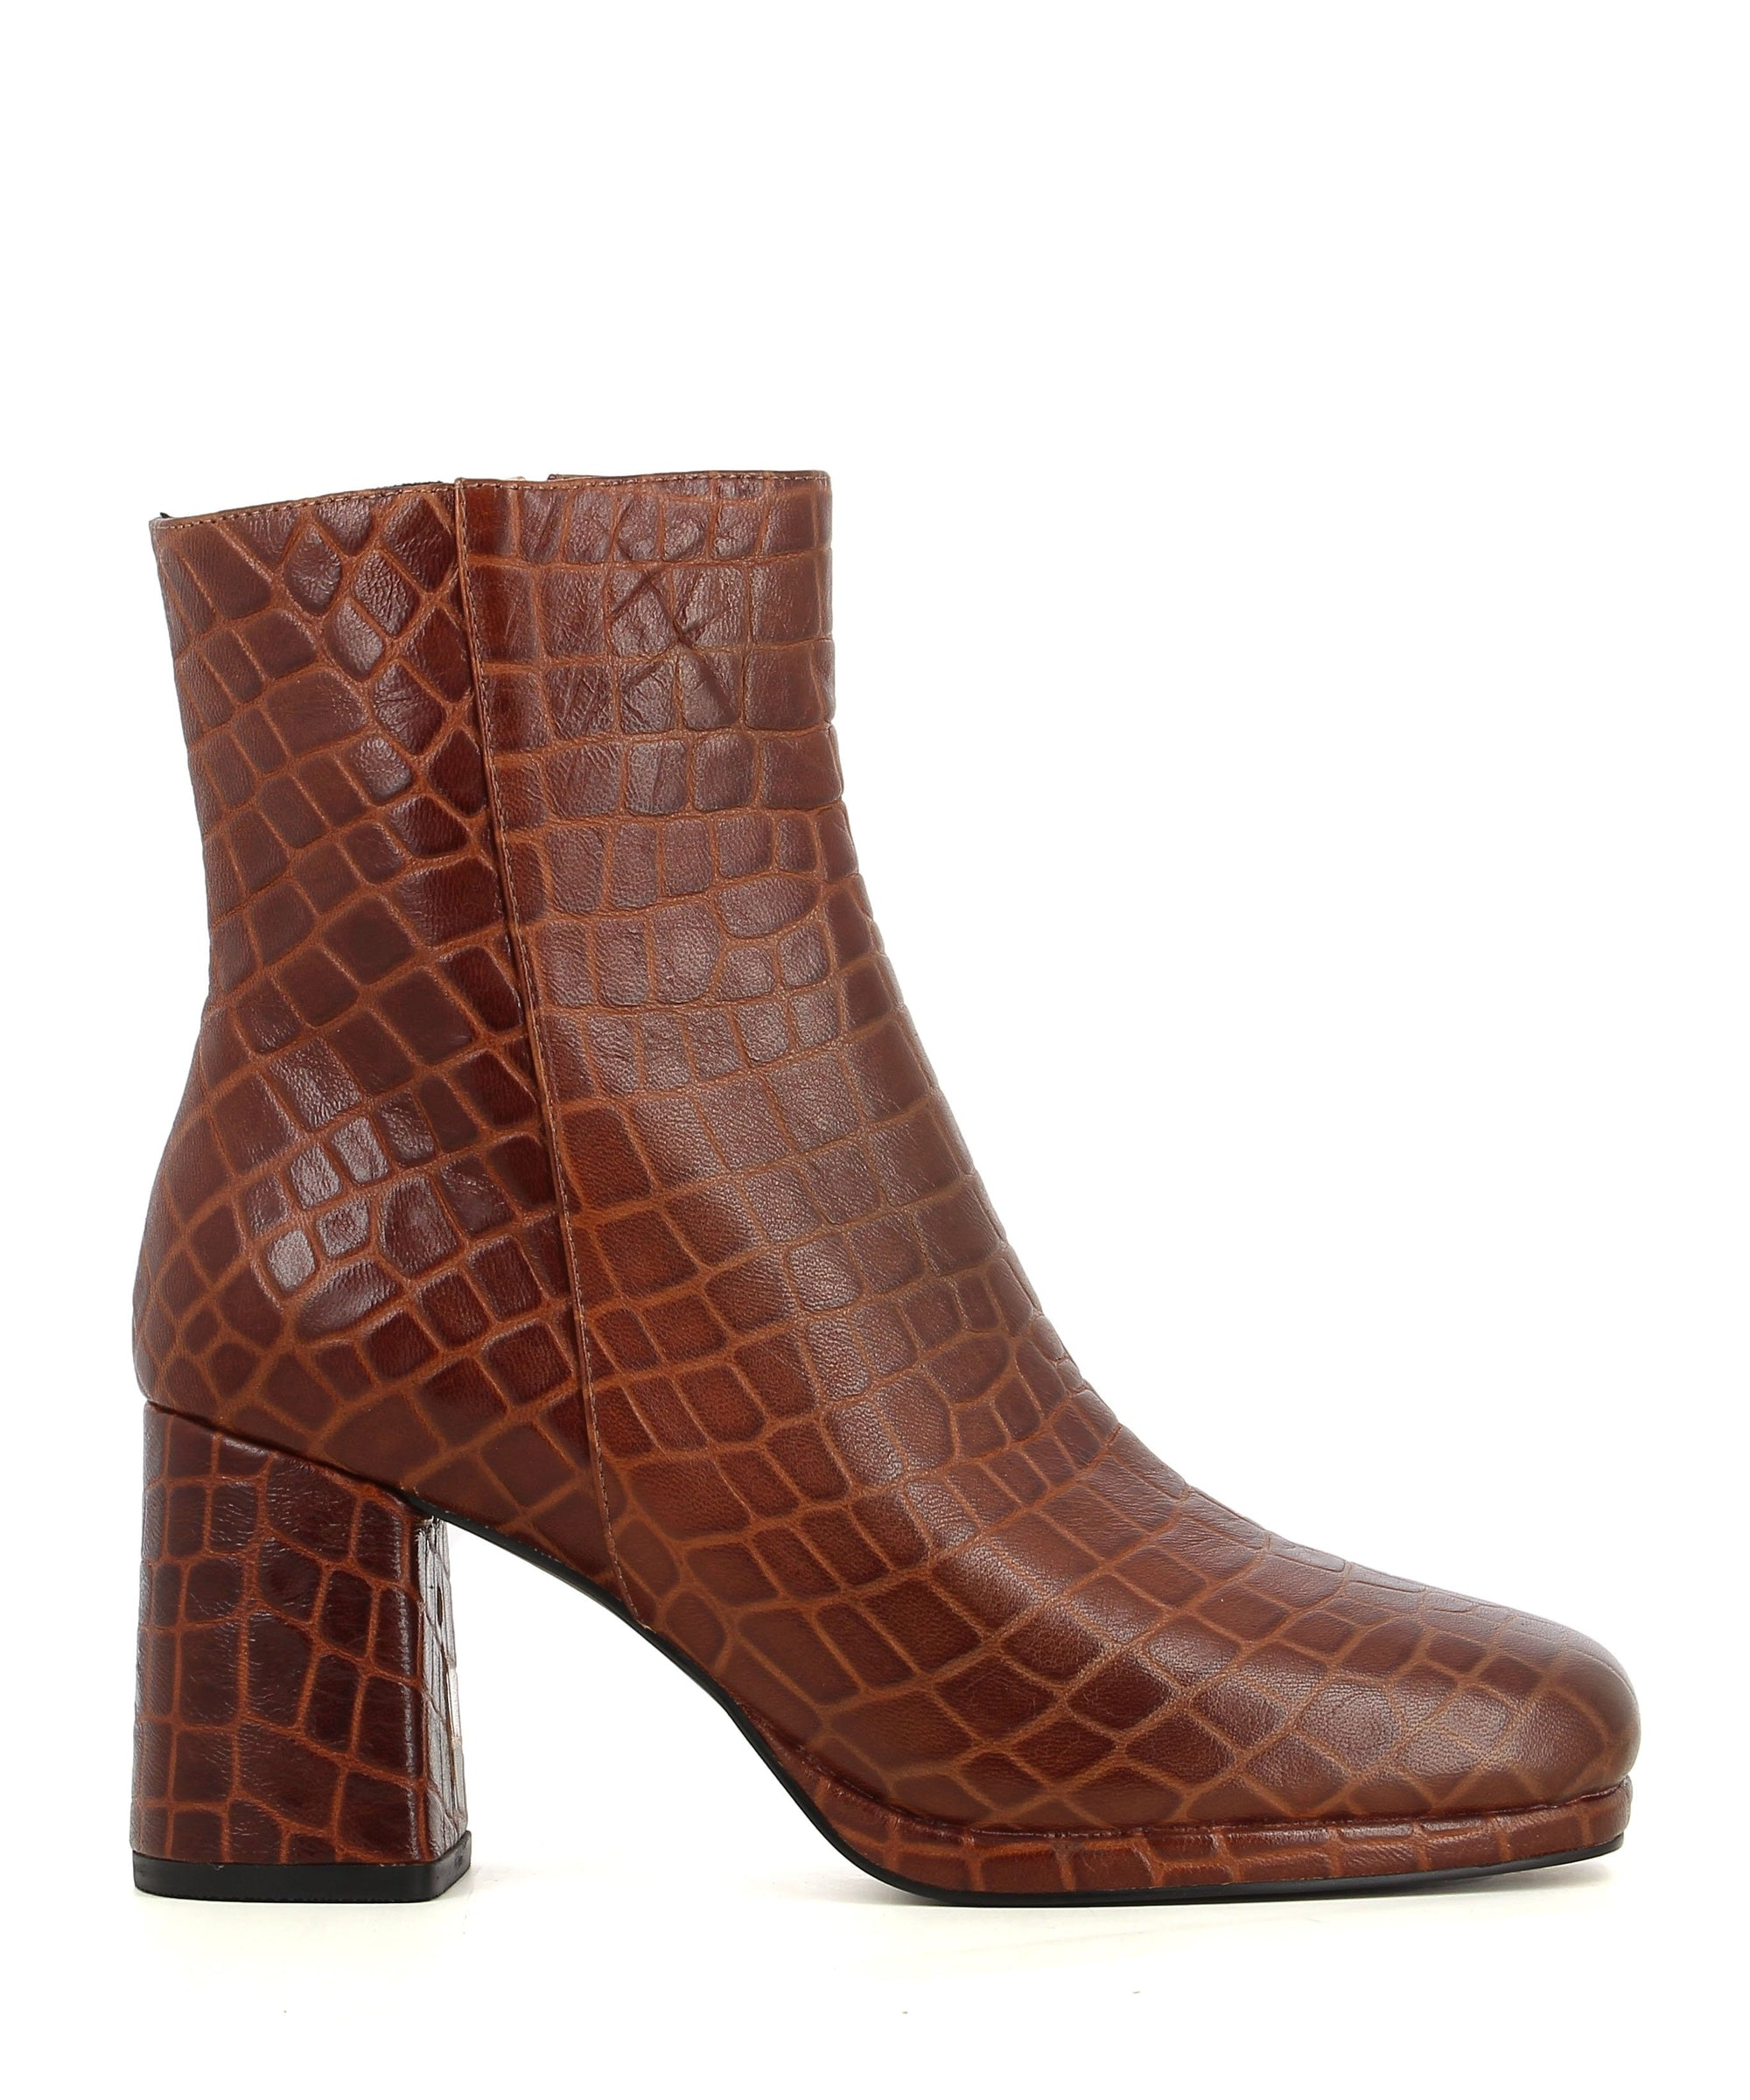 A brown croc print ankle boot featuring zipper fastenings, a platform sole, a block heel and a square toe by 2 Baia Vista.